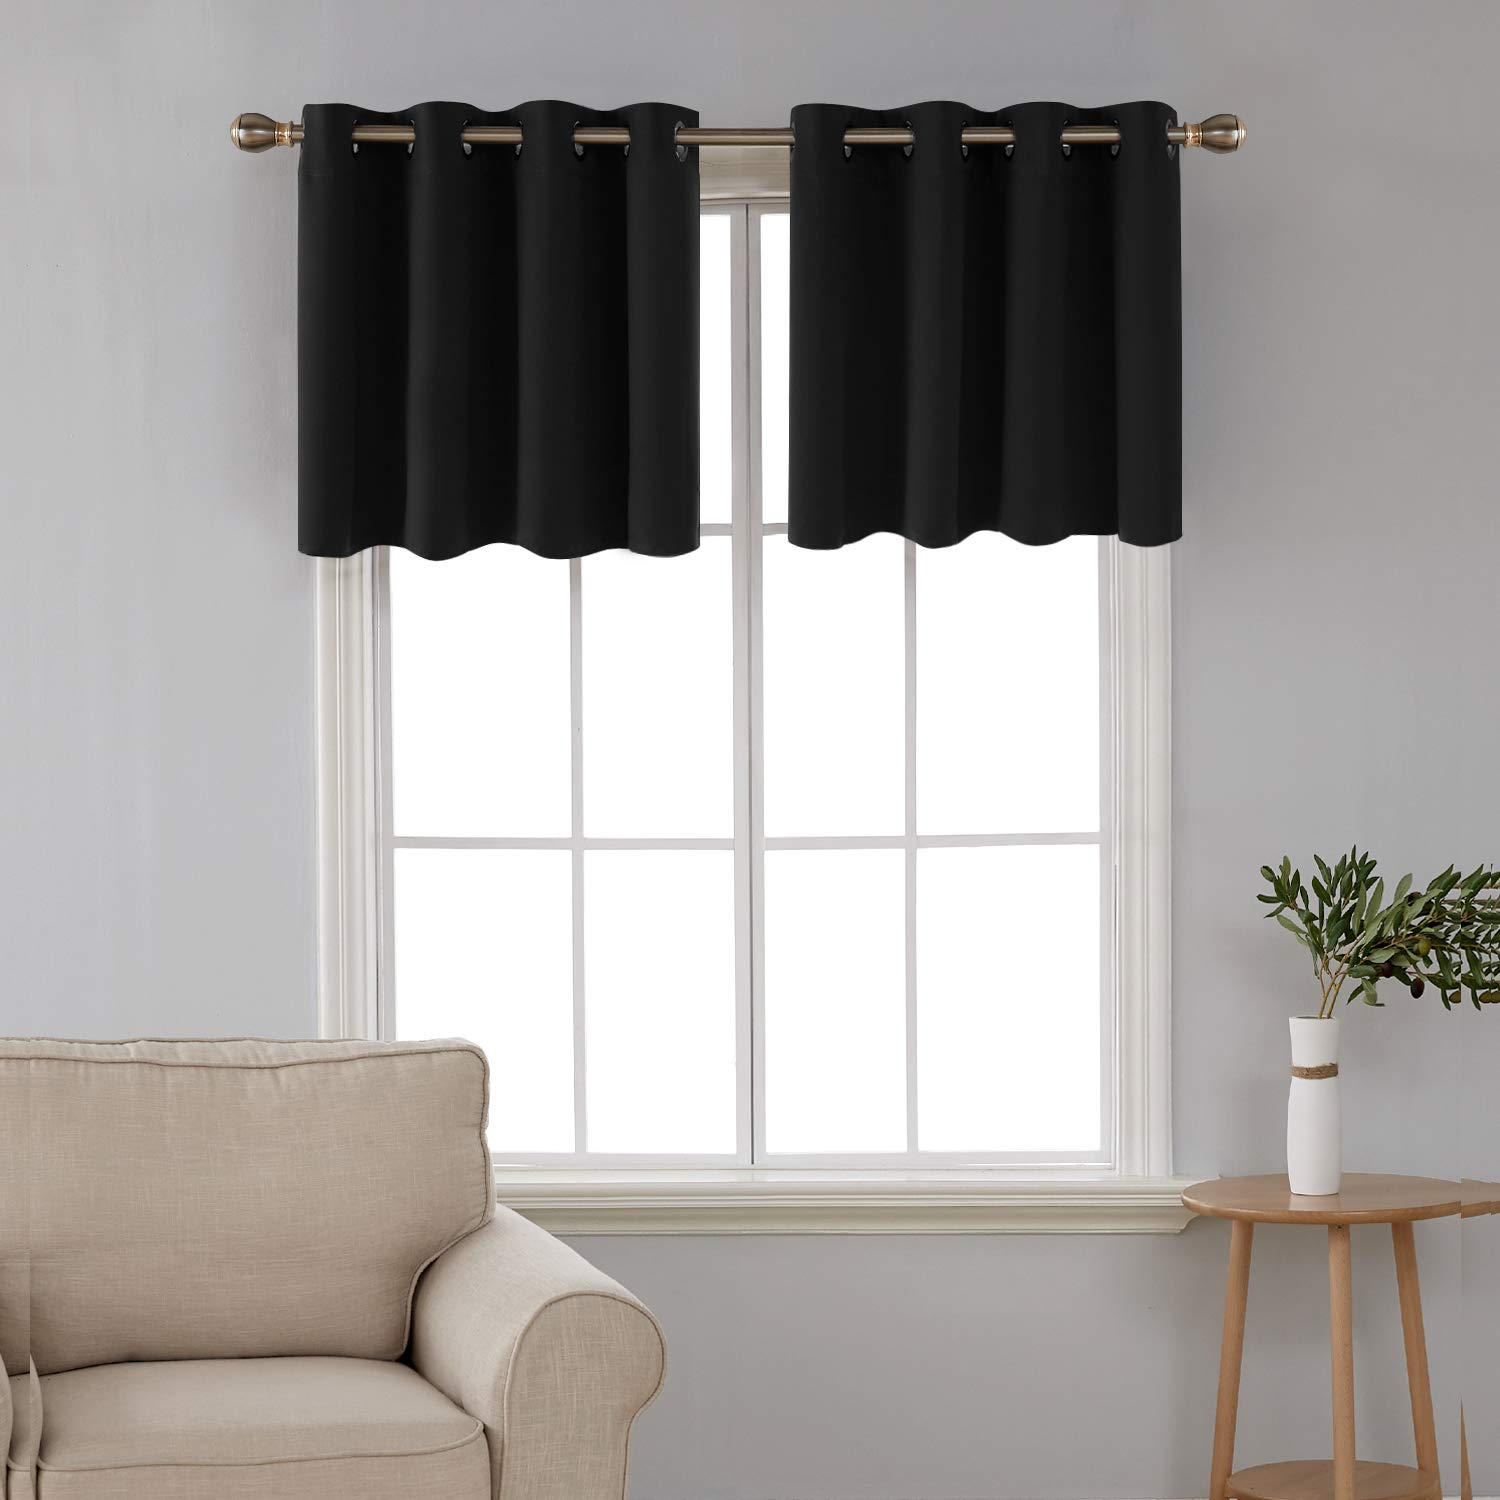 Window Valances Kitchen 2